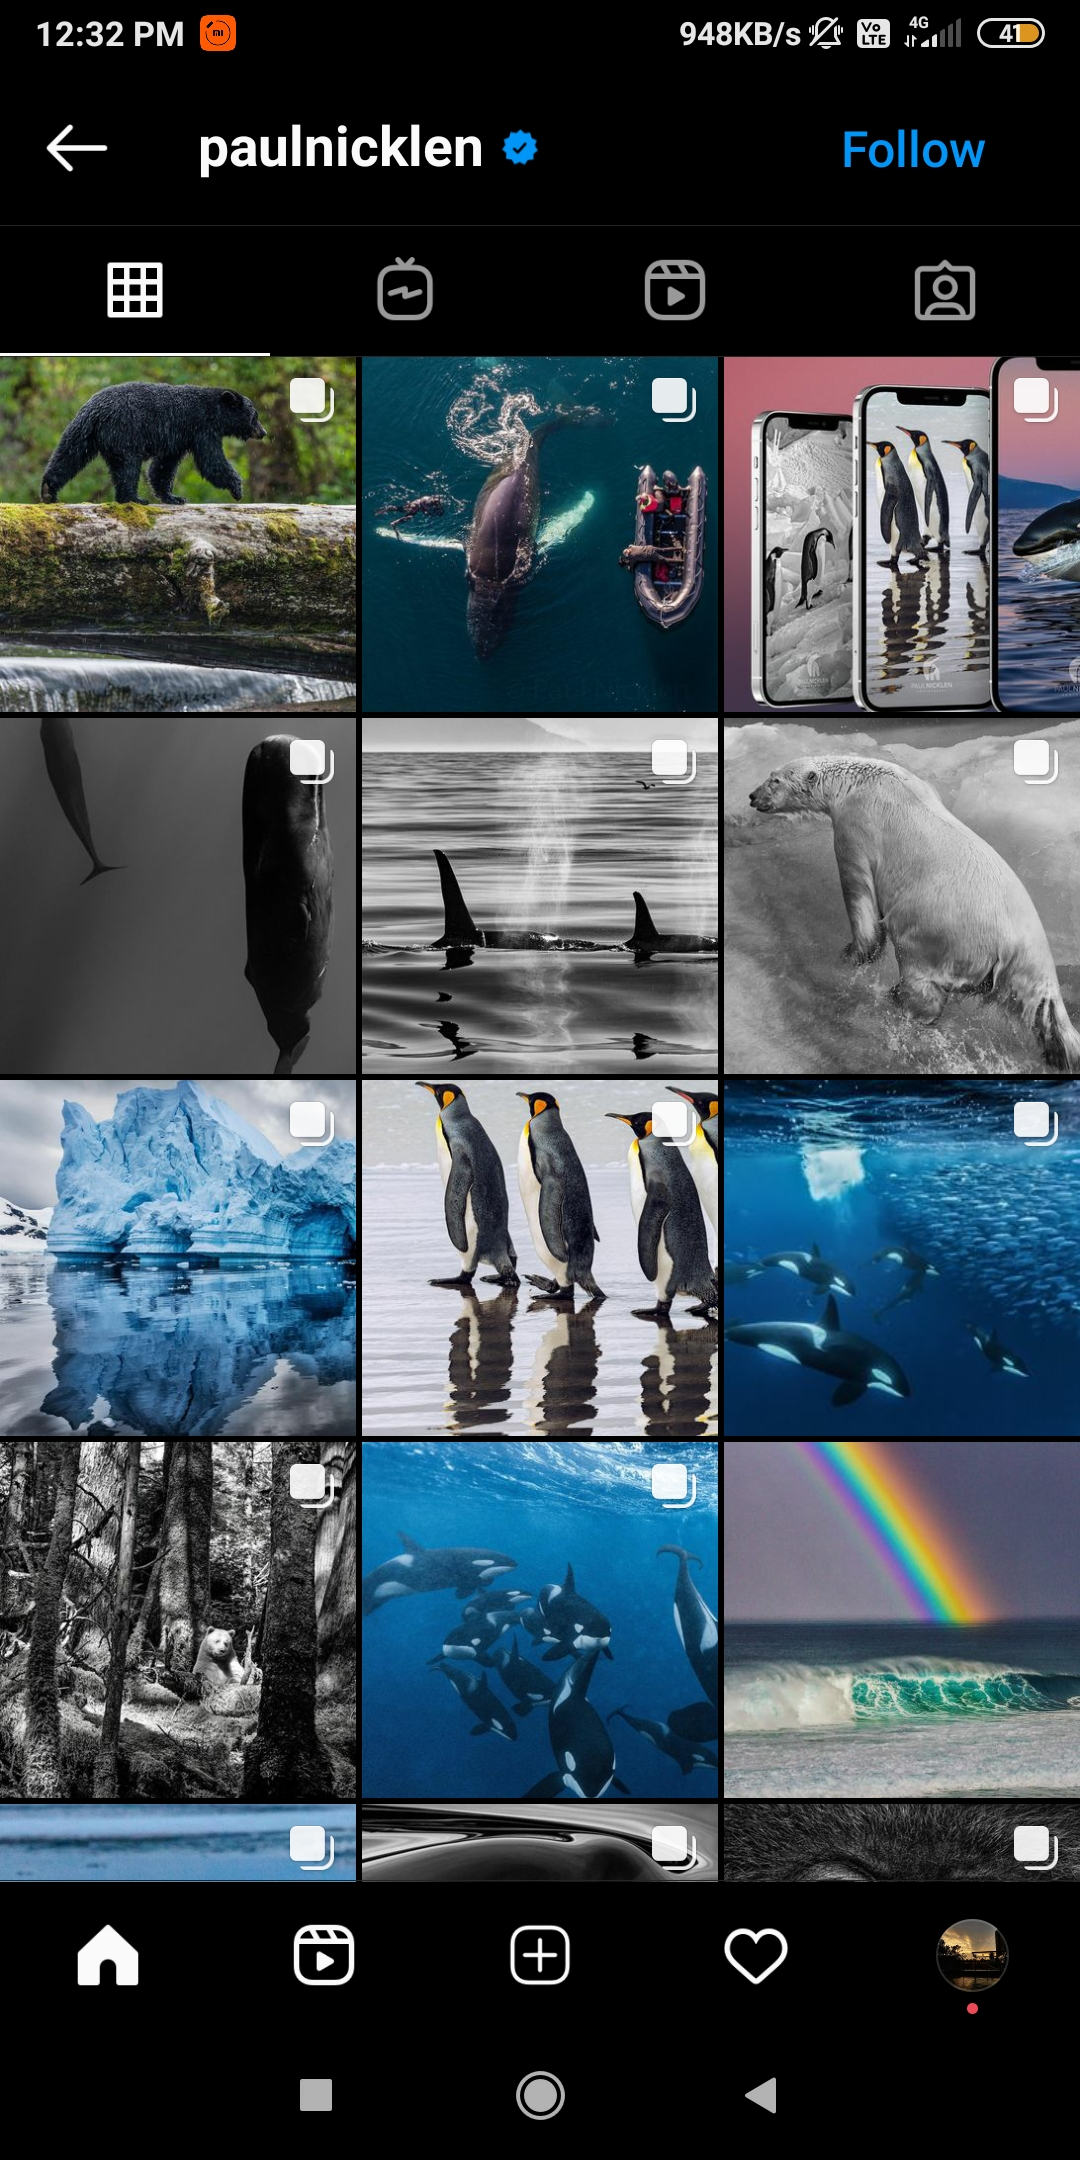 @paulnickle  -  paulnicklen - 43 Best PHOTOGRAPHY Instagram Accounts  – PHOTOGRAPHERS to Follow Right Now